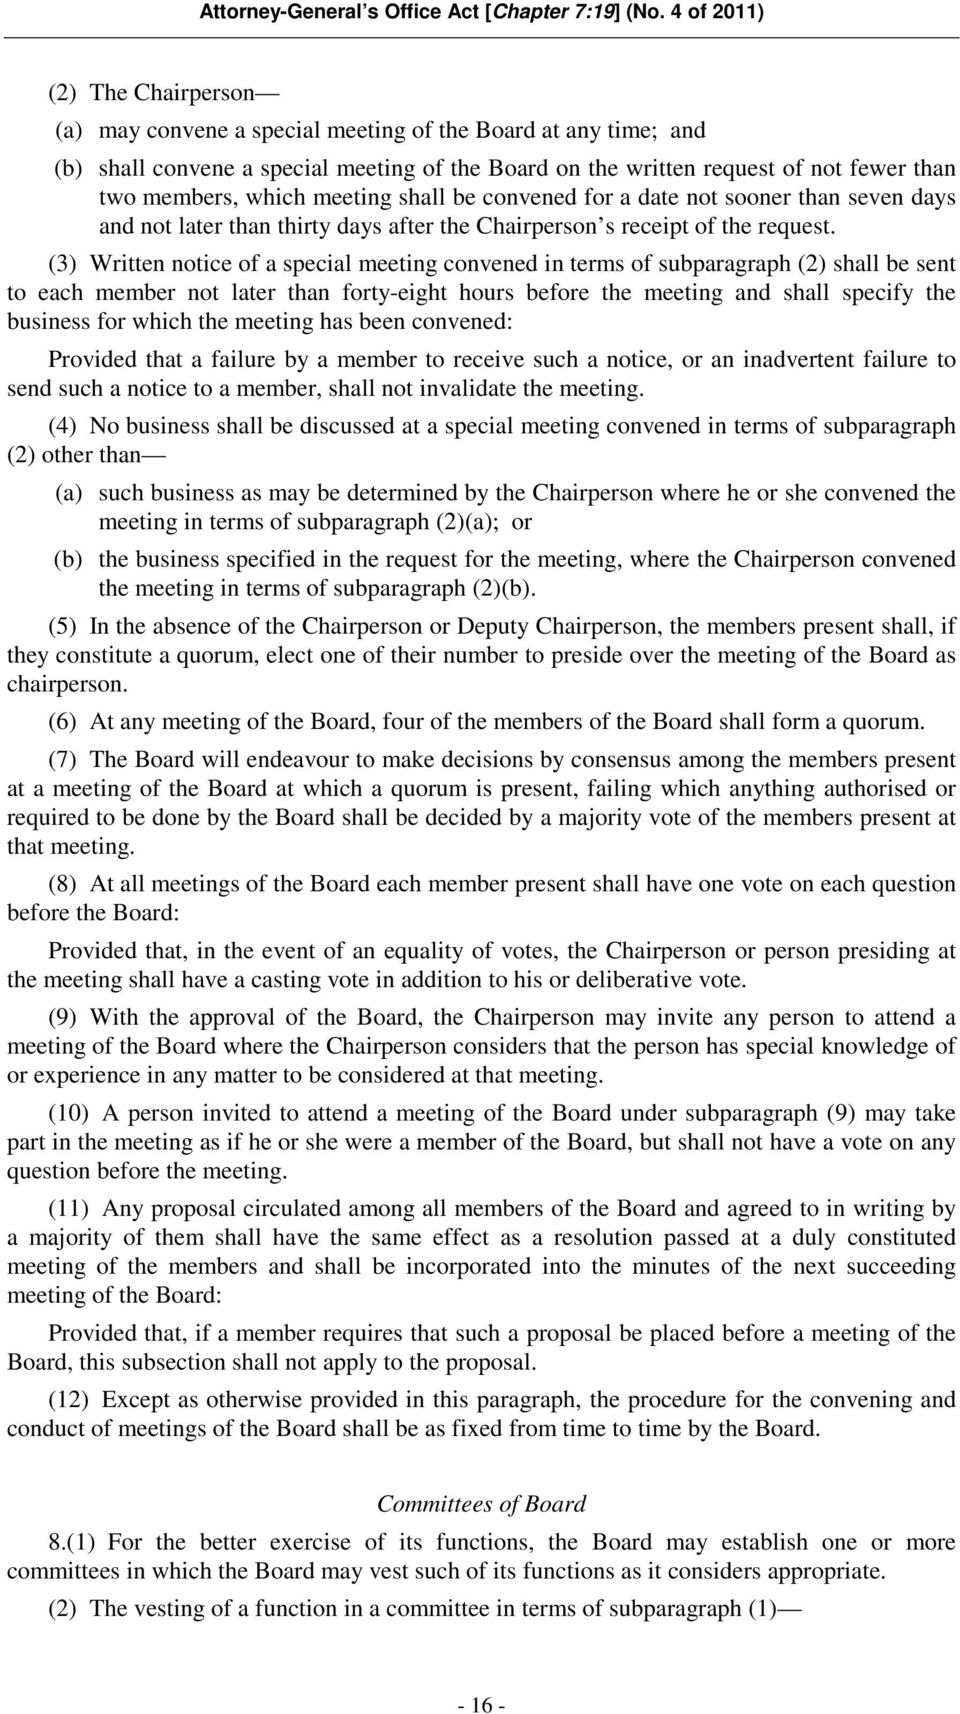 (3) Written notice of a special meeting convened in terms of subparagraph (2) shall be sent to each member not later than forty-eight hours before the meeting and shall specify the business for which